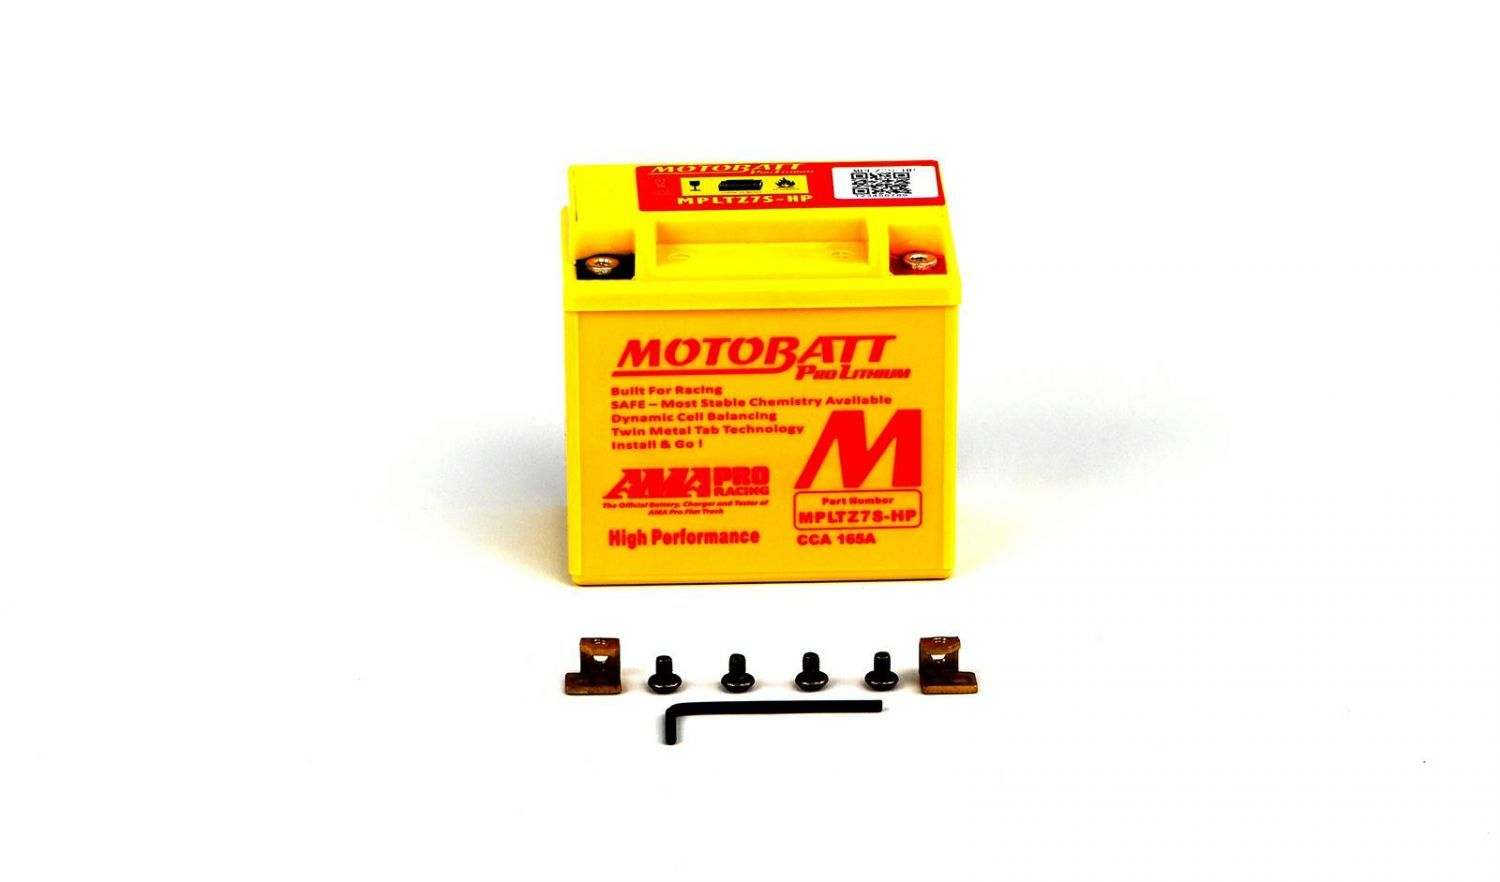 Motobatt Lithium Batteries - 501079MR image